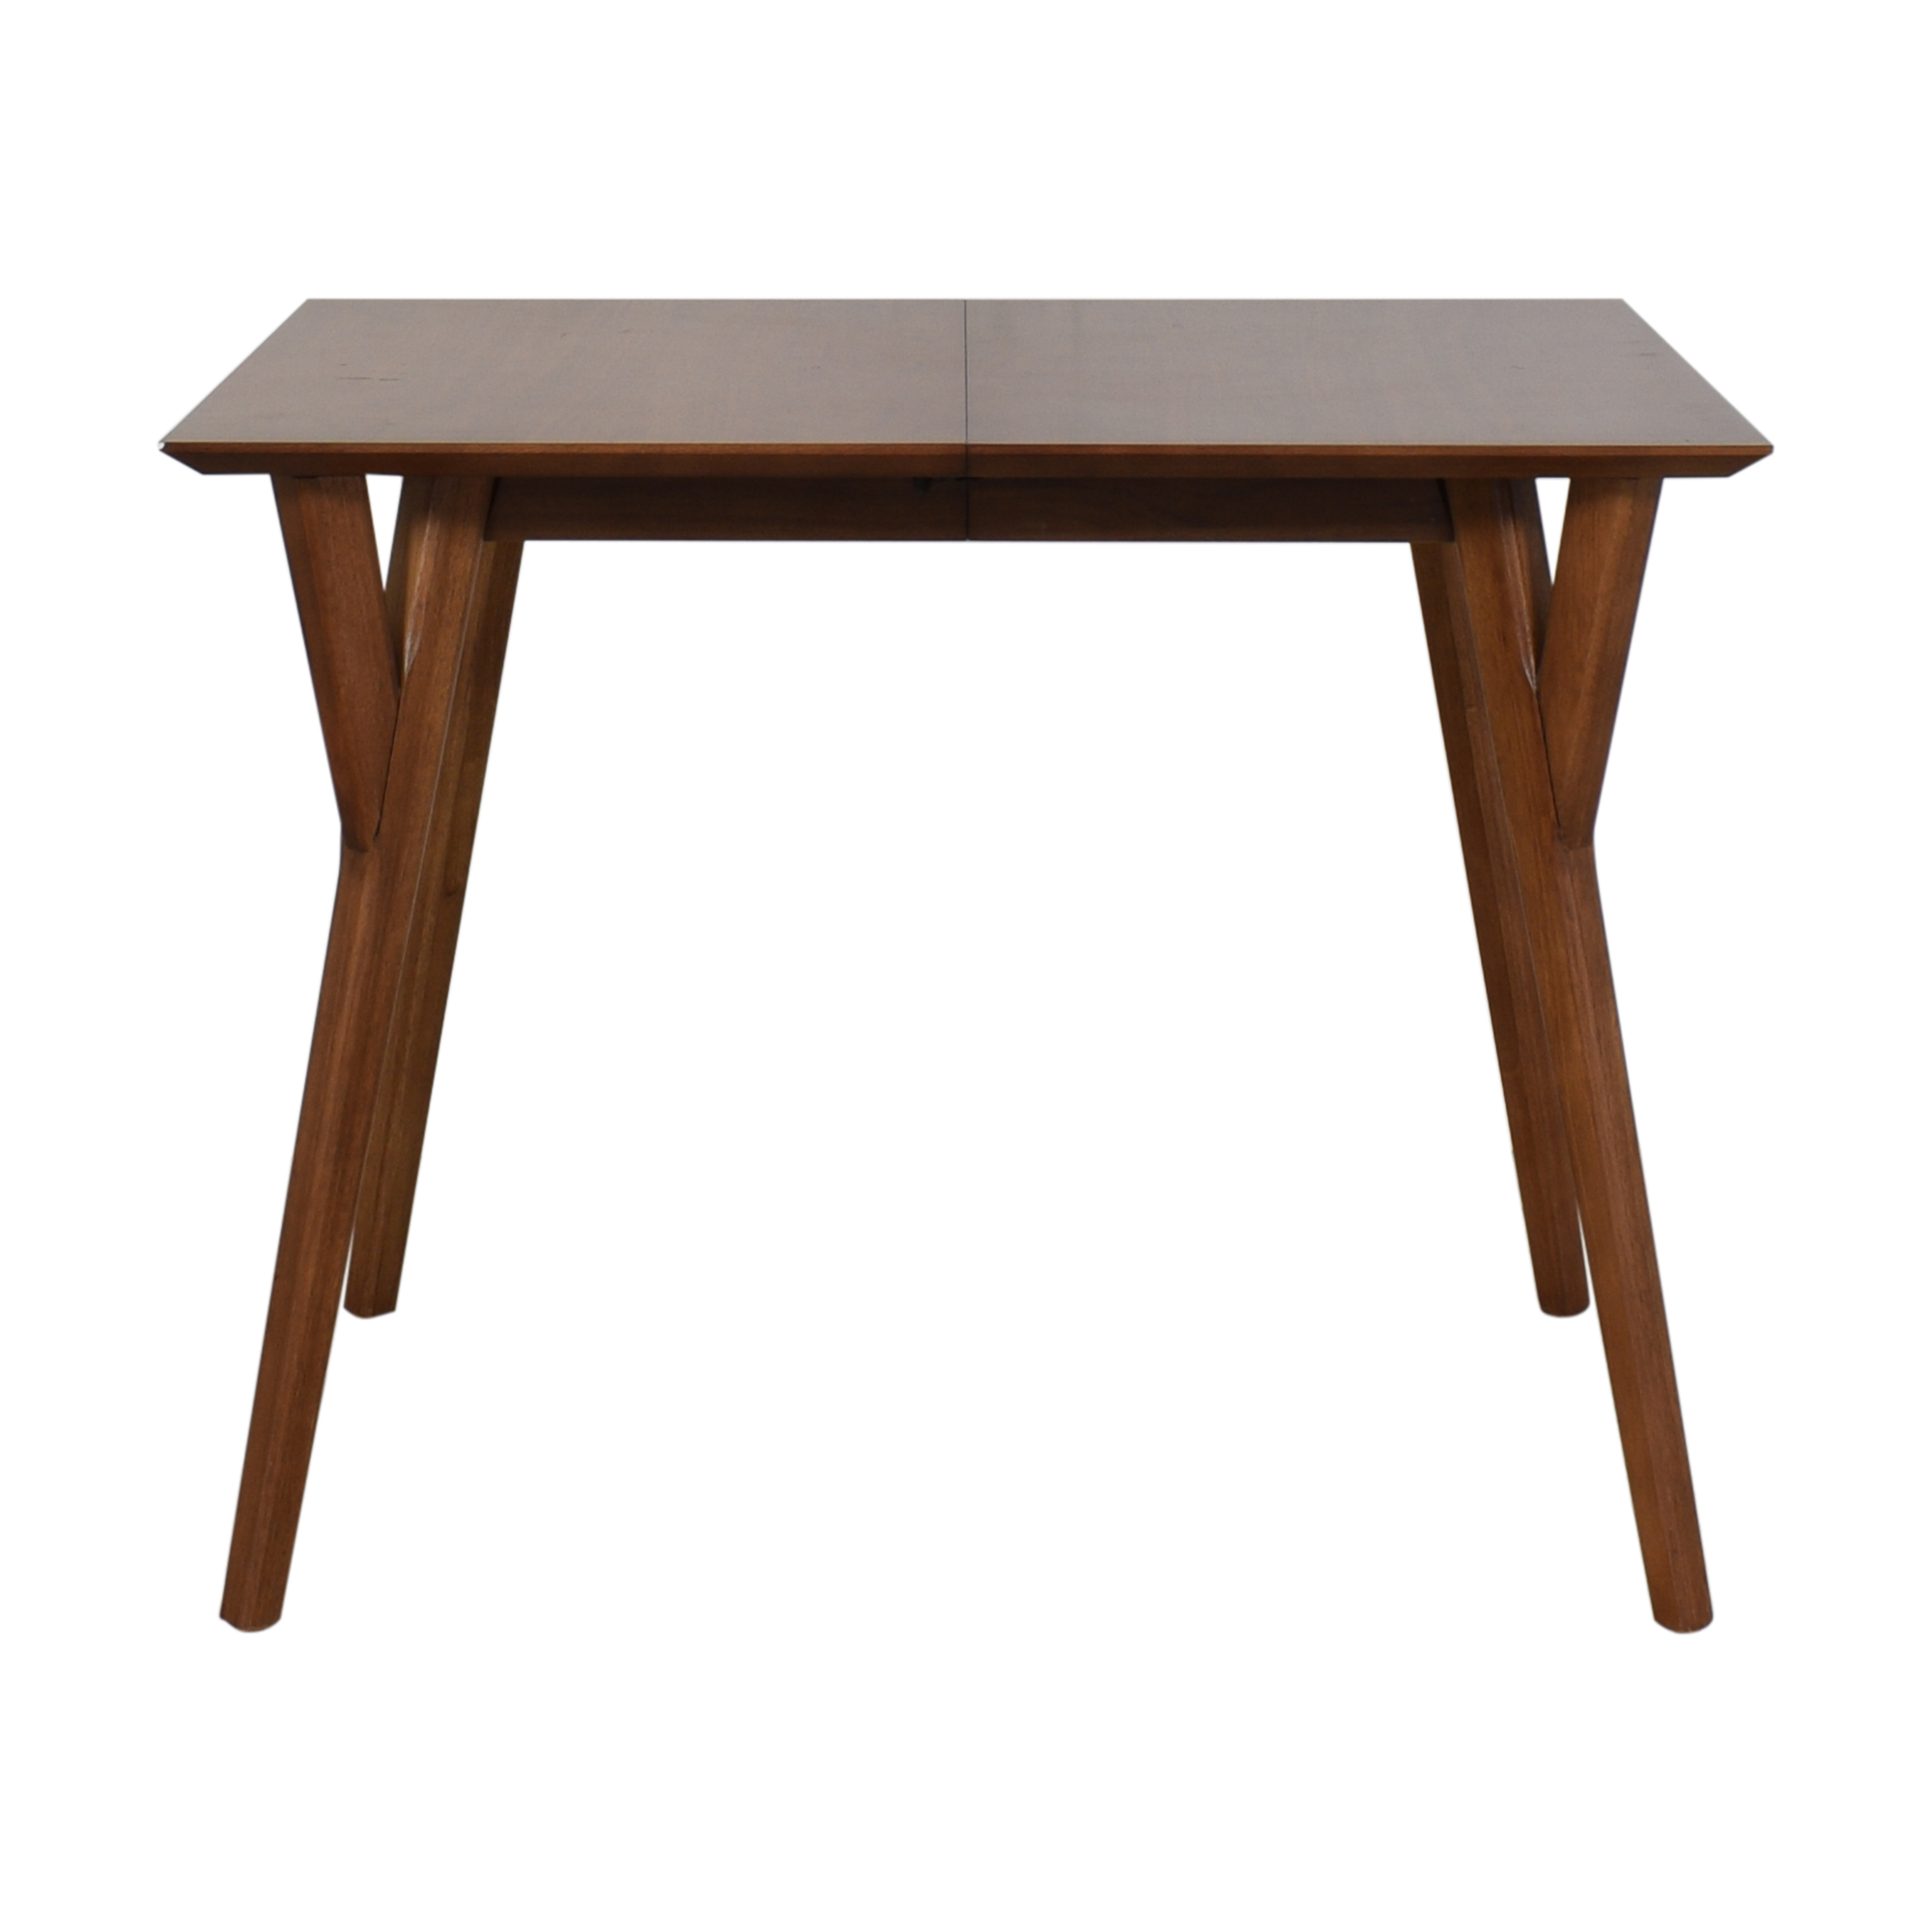 West Elm West Elm Mid-Century Expandable Dining Table pa